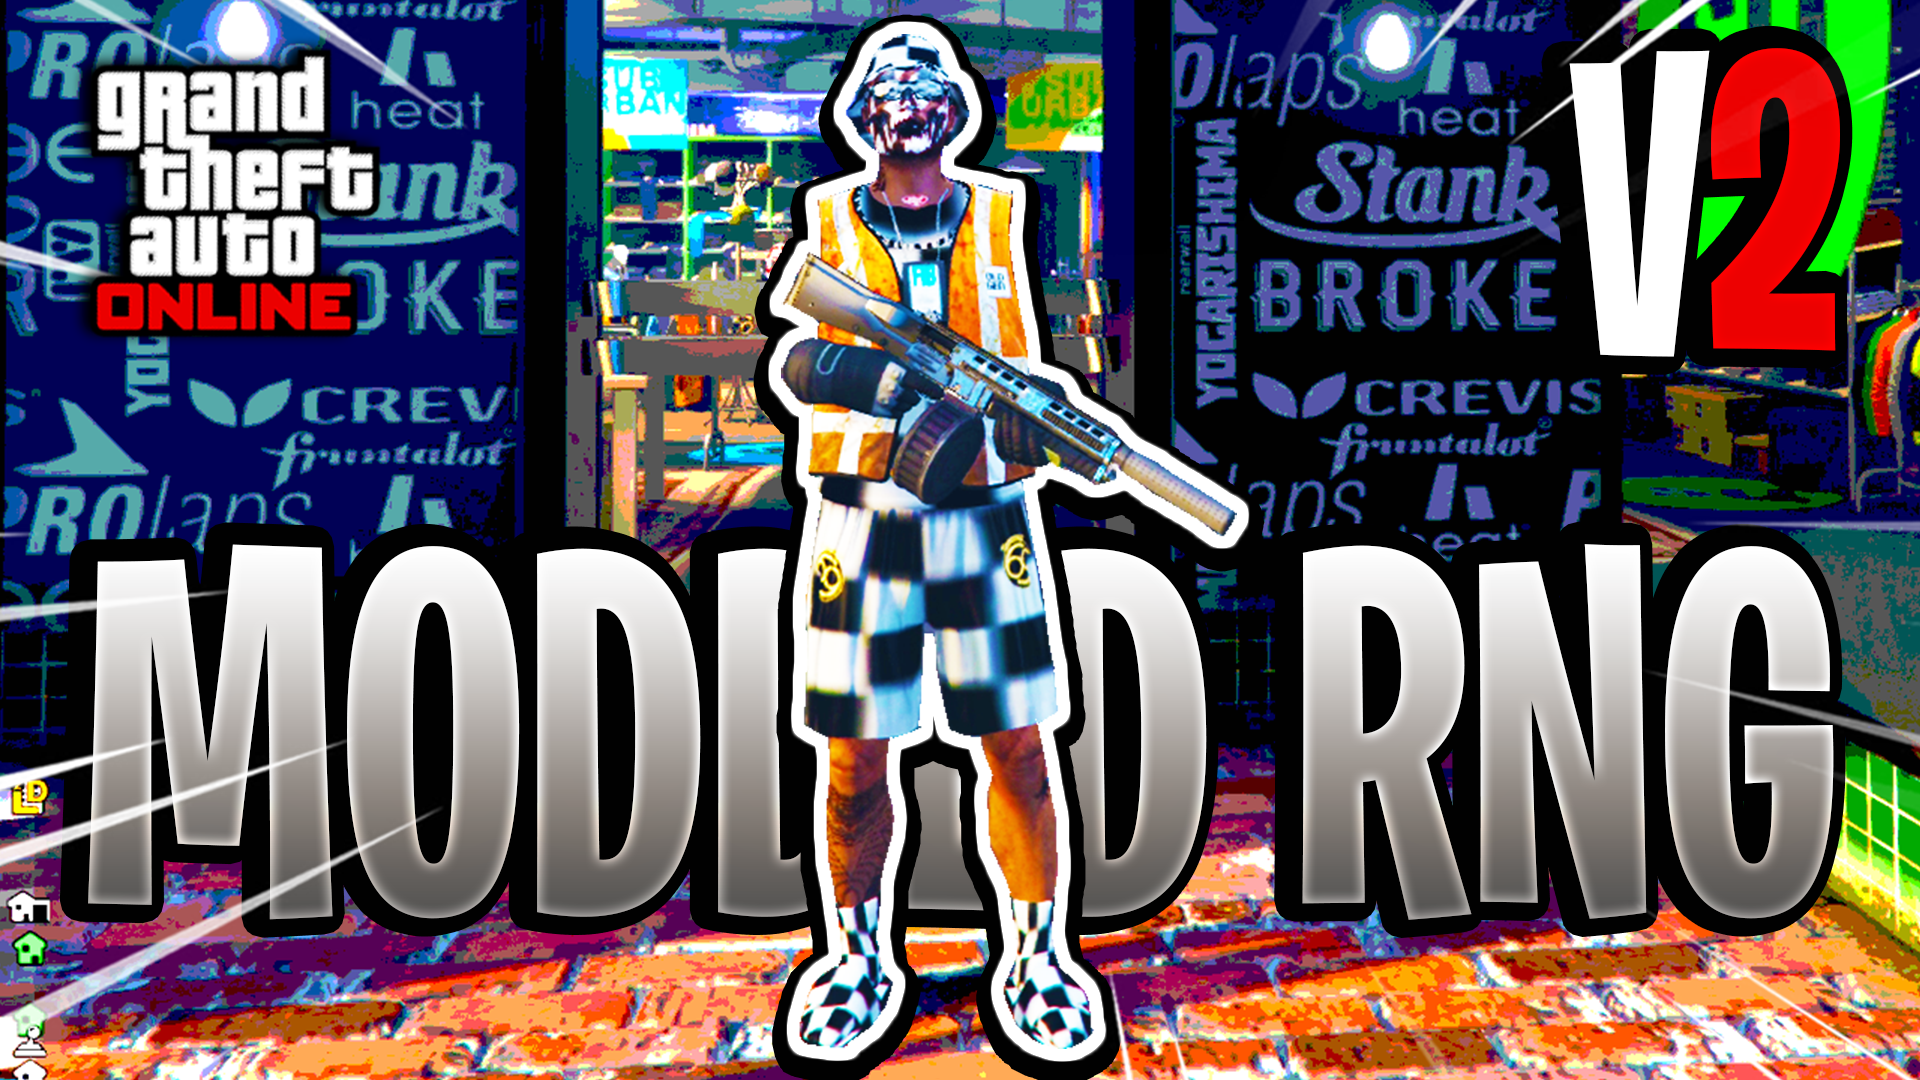 Full Checkerboard Modded Outfit v2 (Keep All Outfits) GTA Online